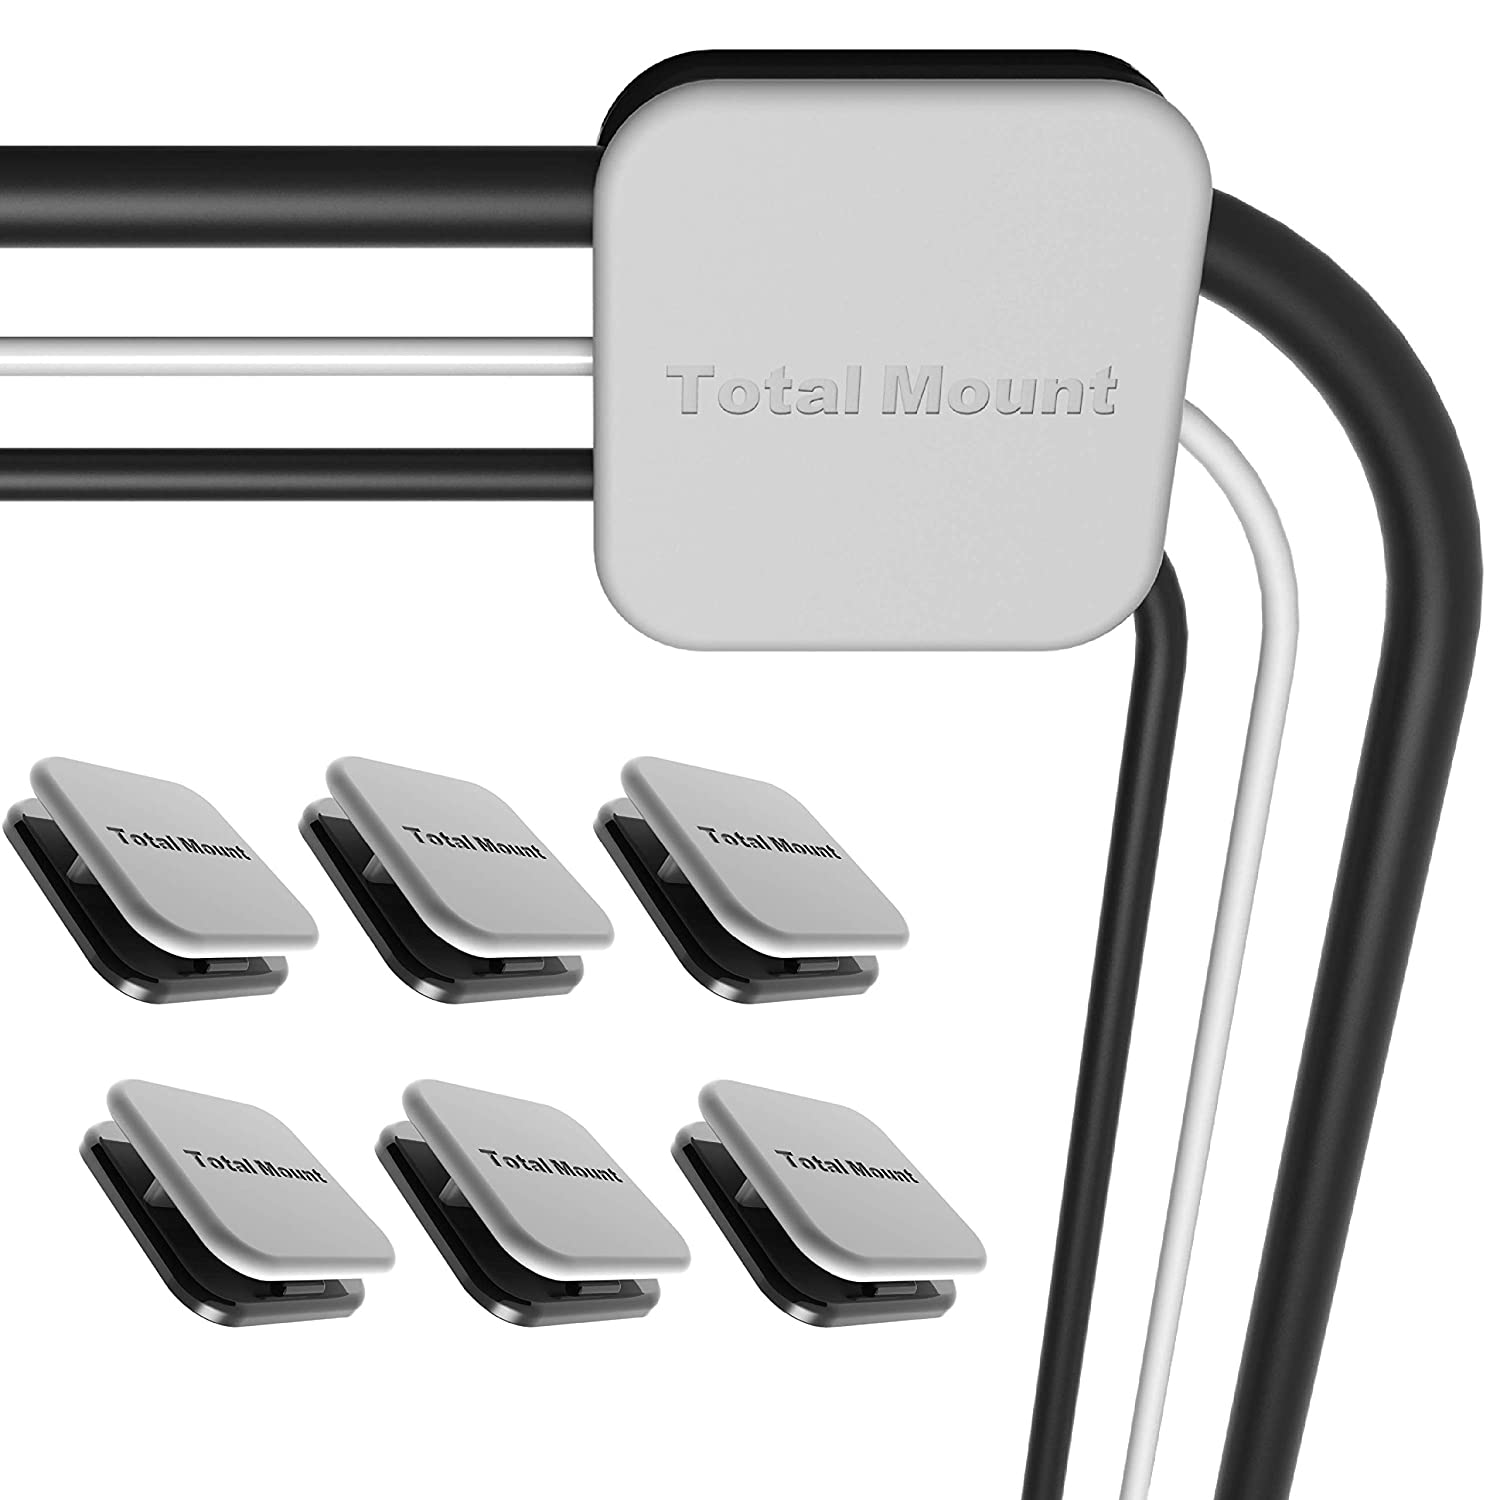 TotalMount Television Cable Managers - Organize Your TV Cables (Includes 6 Large Cable Managers That Each Hold 2 to 4 Cables)